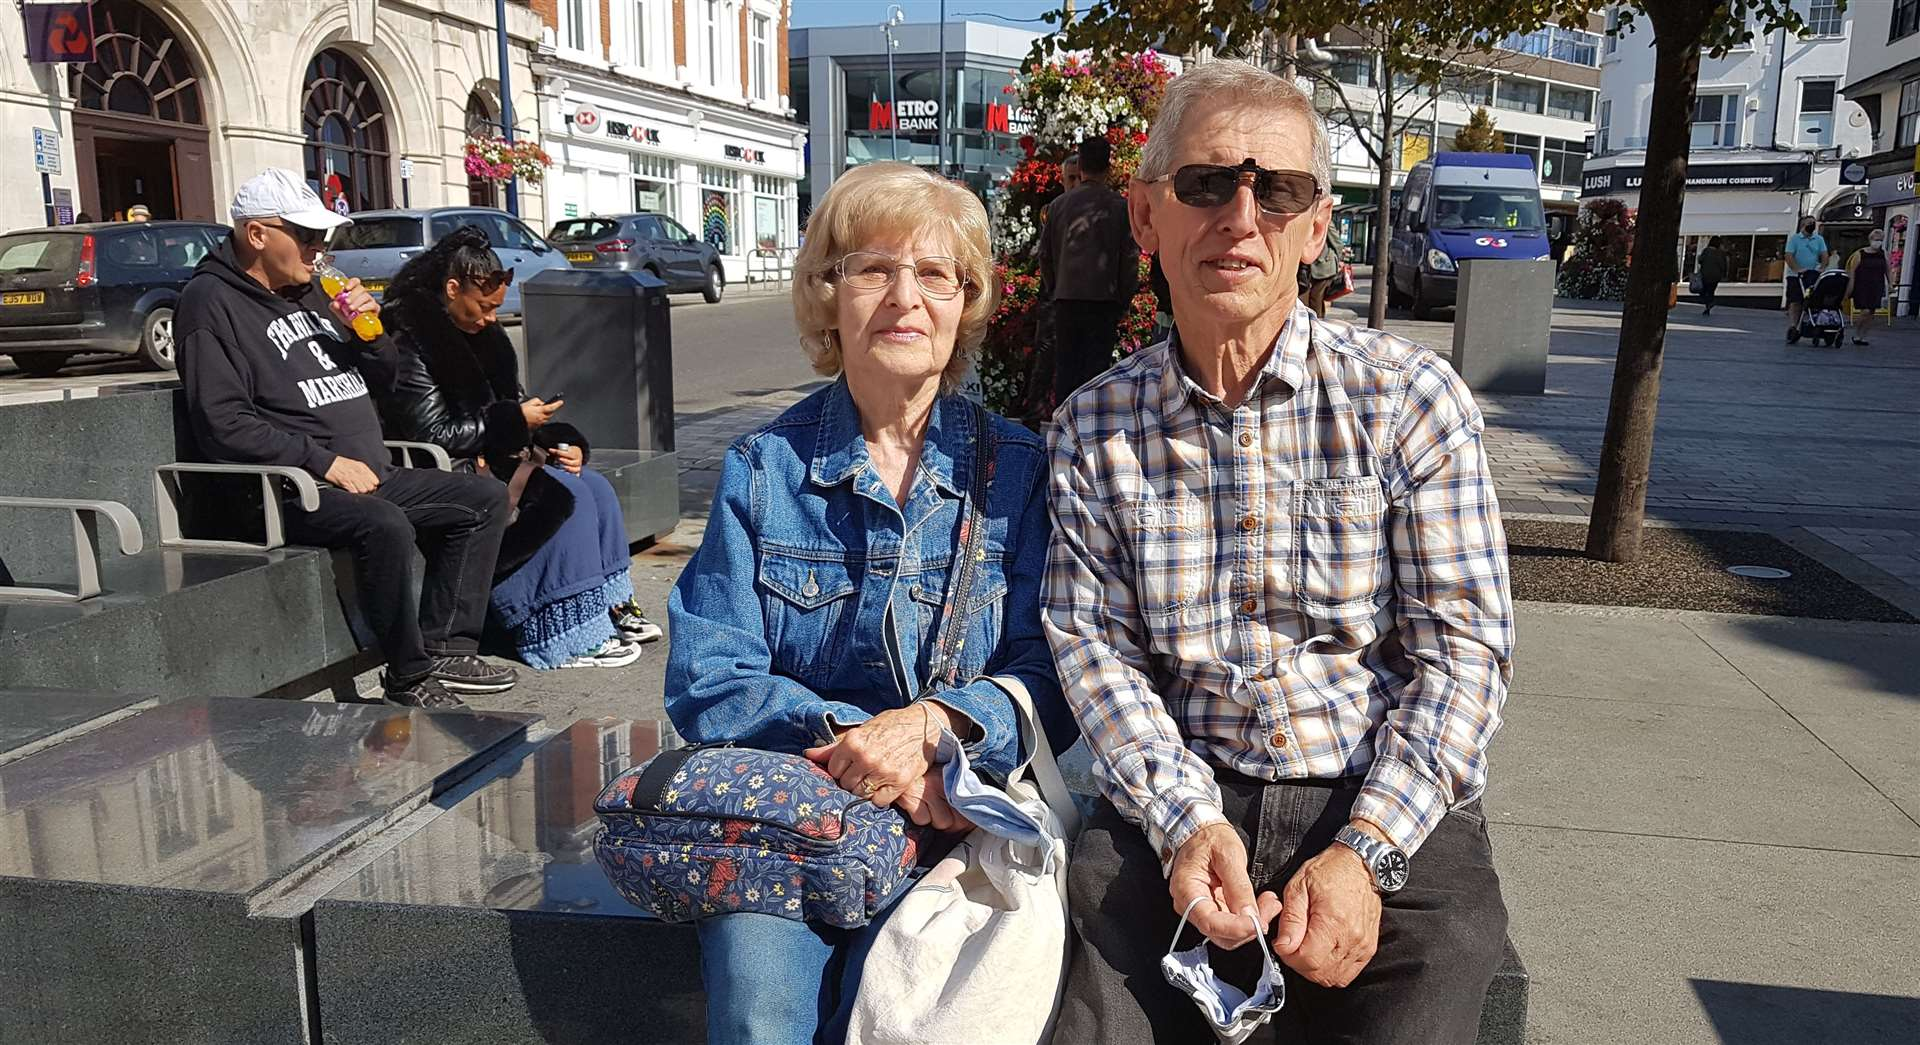 Sylvia and Derek Barnard from Wrotham Heath travelled to Maidstone for the first time since Christmas